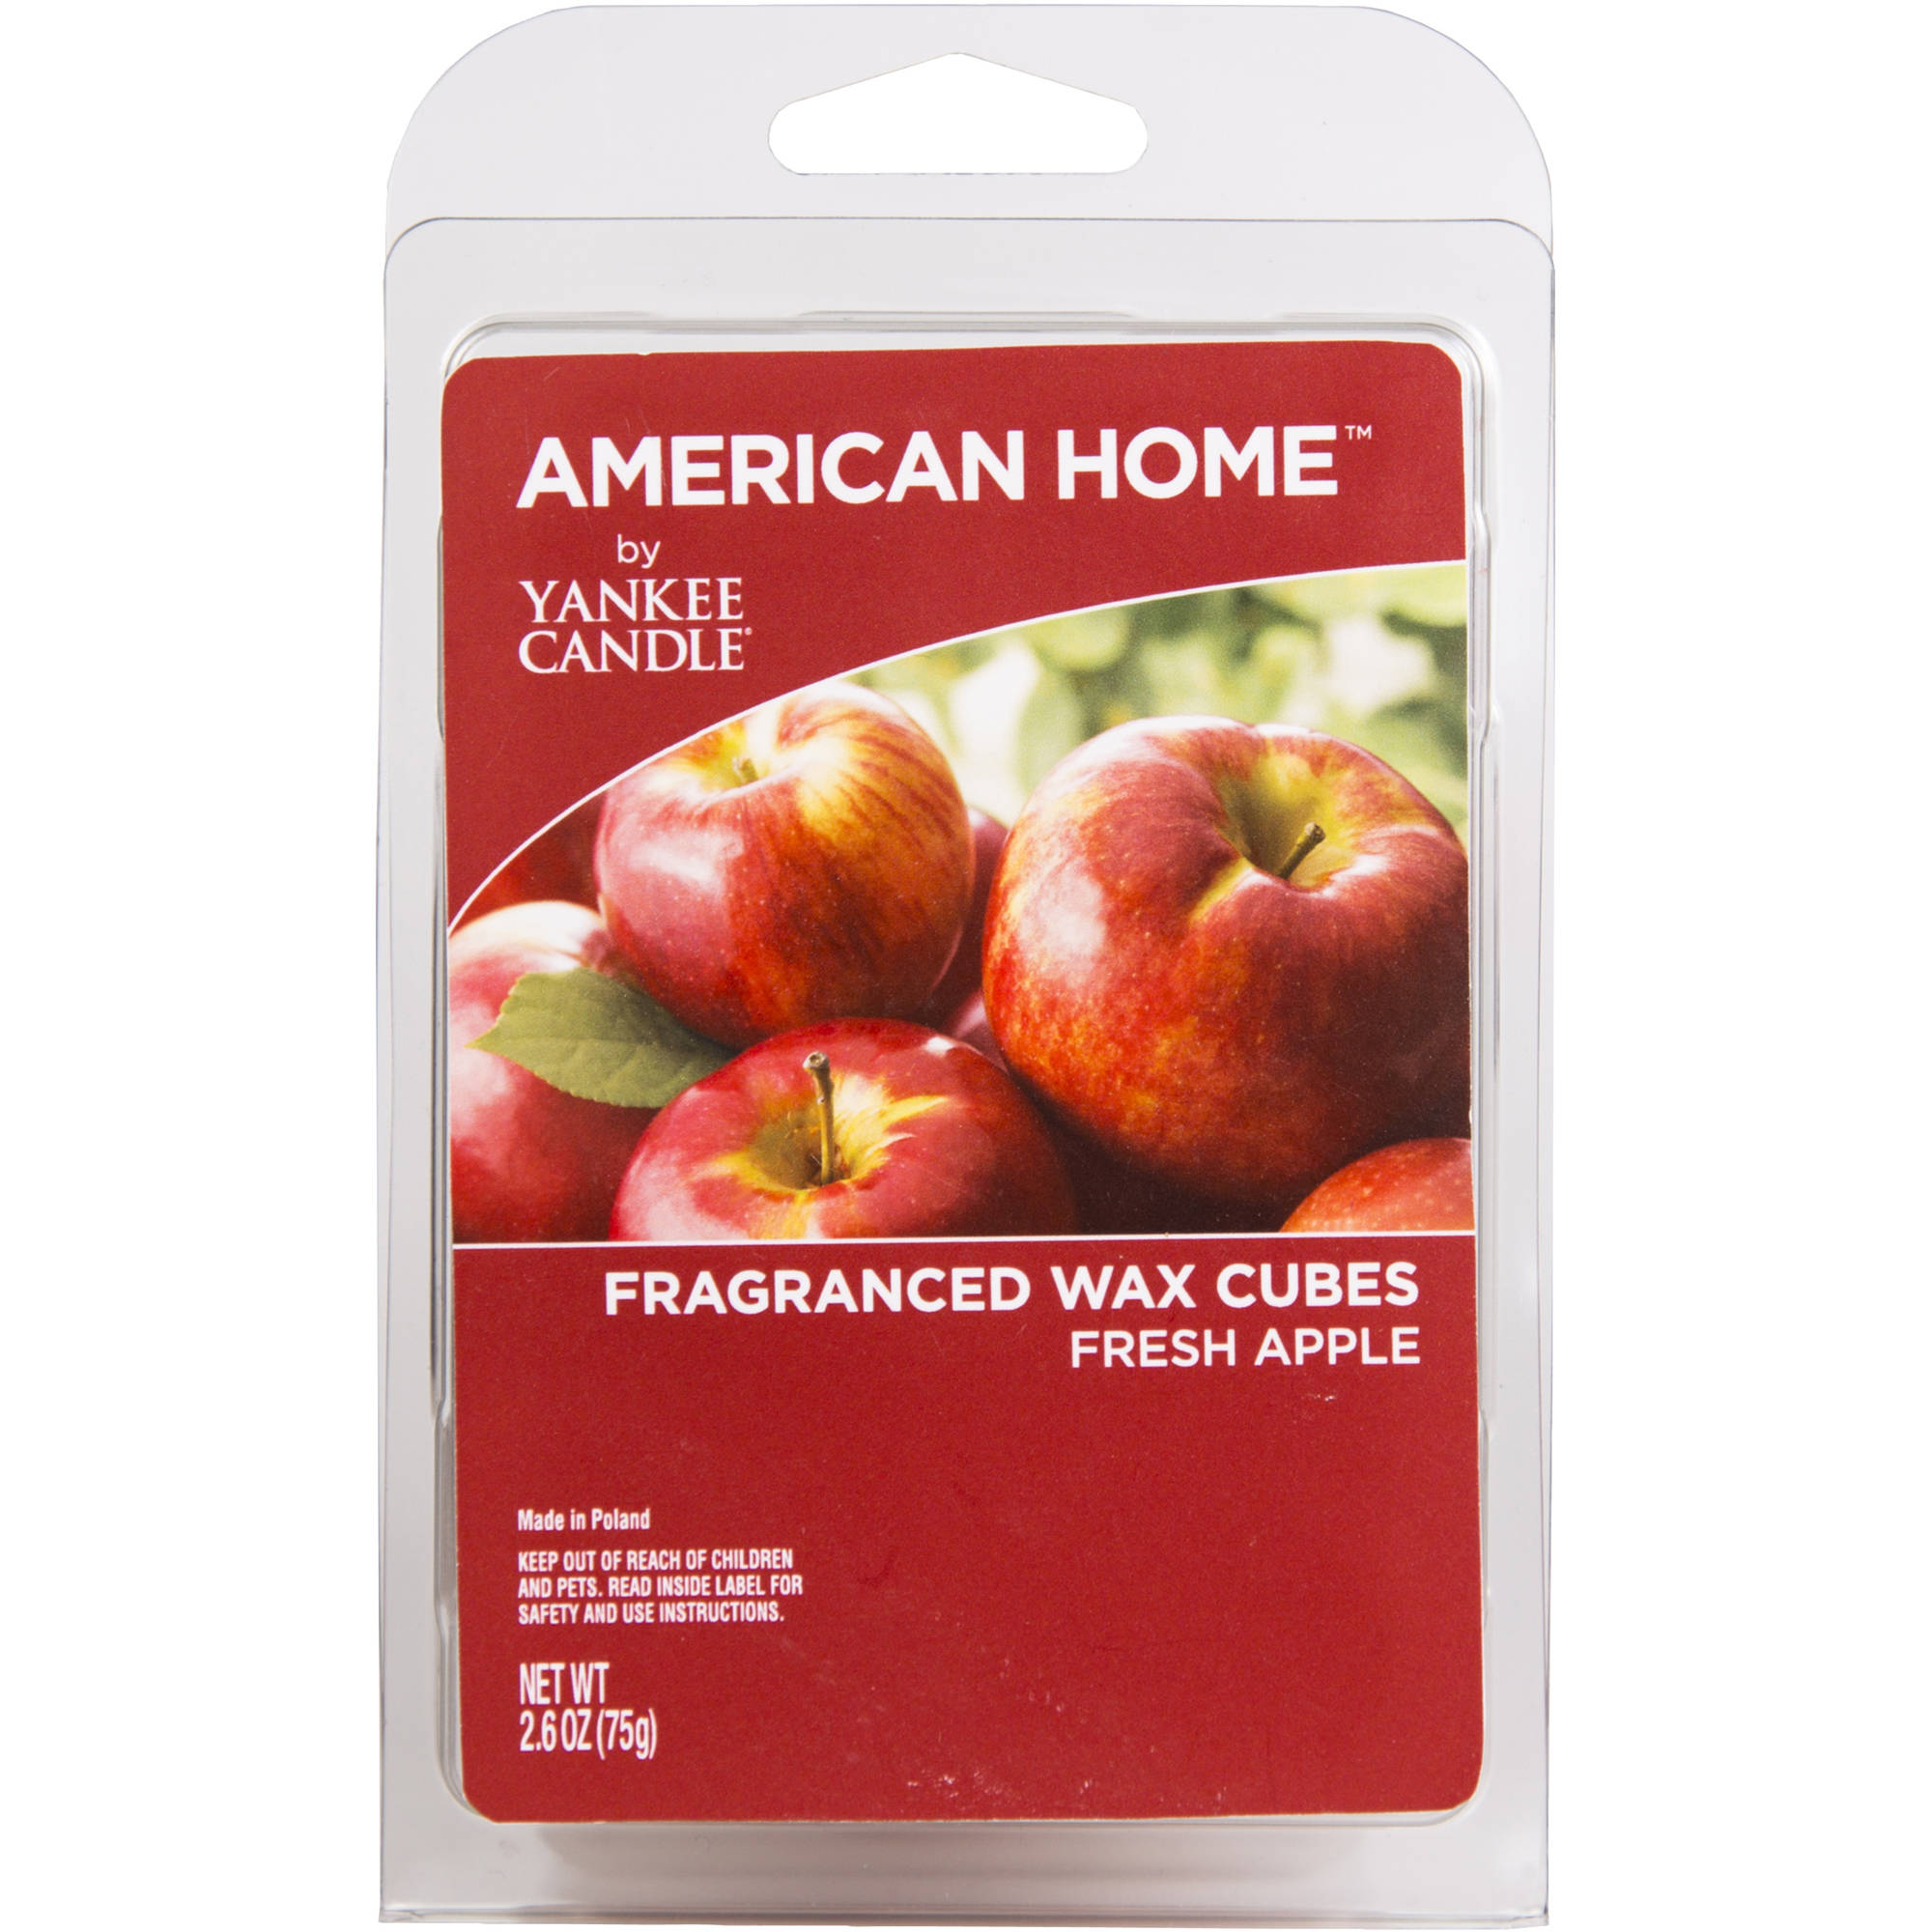 American Home by Yankee Candle Fresh Apple, 2.6 oz Fragranced Wax Cubes